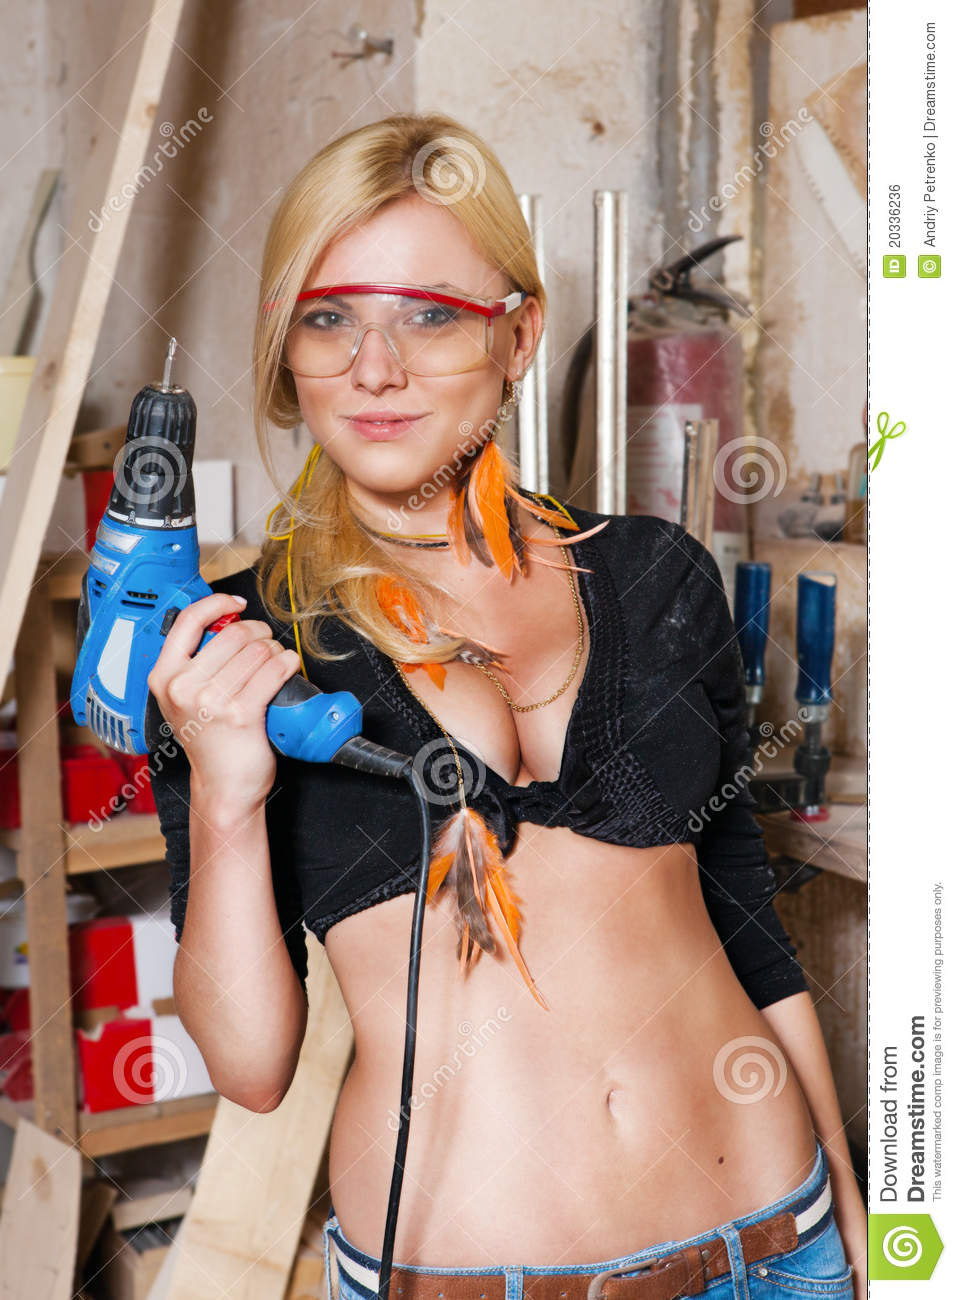 ... Carpentry Shop Carpenters Royalty Free Stock Image - Image: 20336236